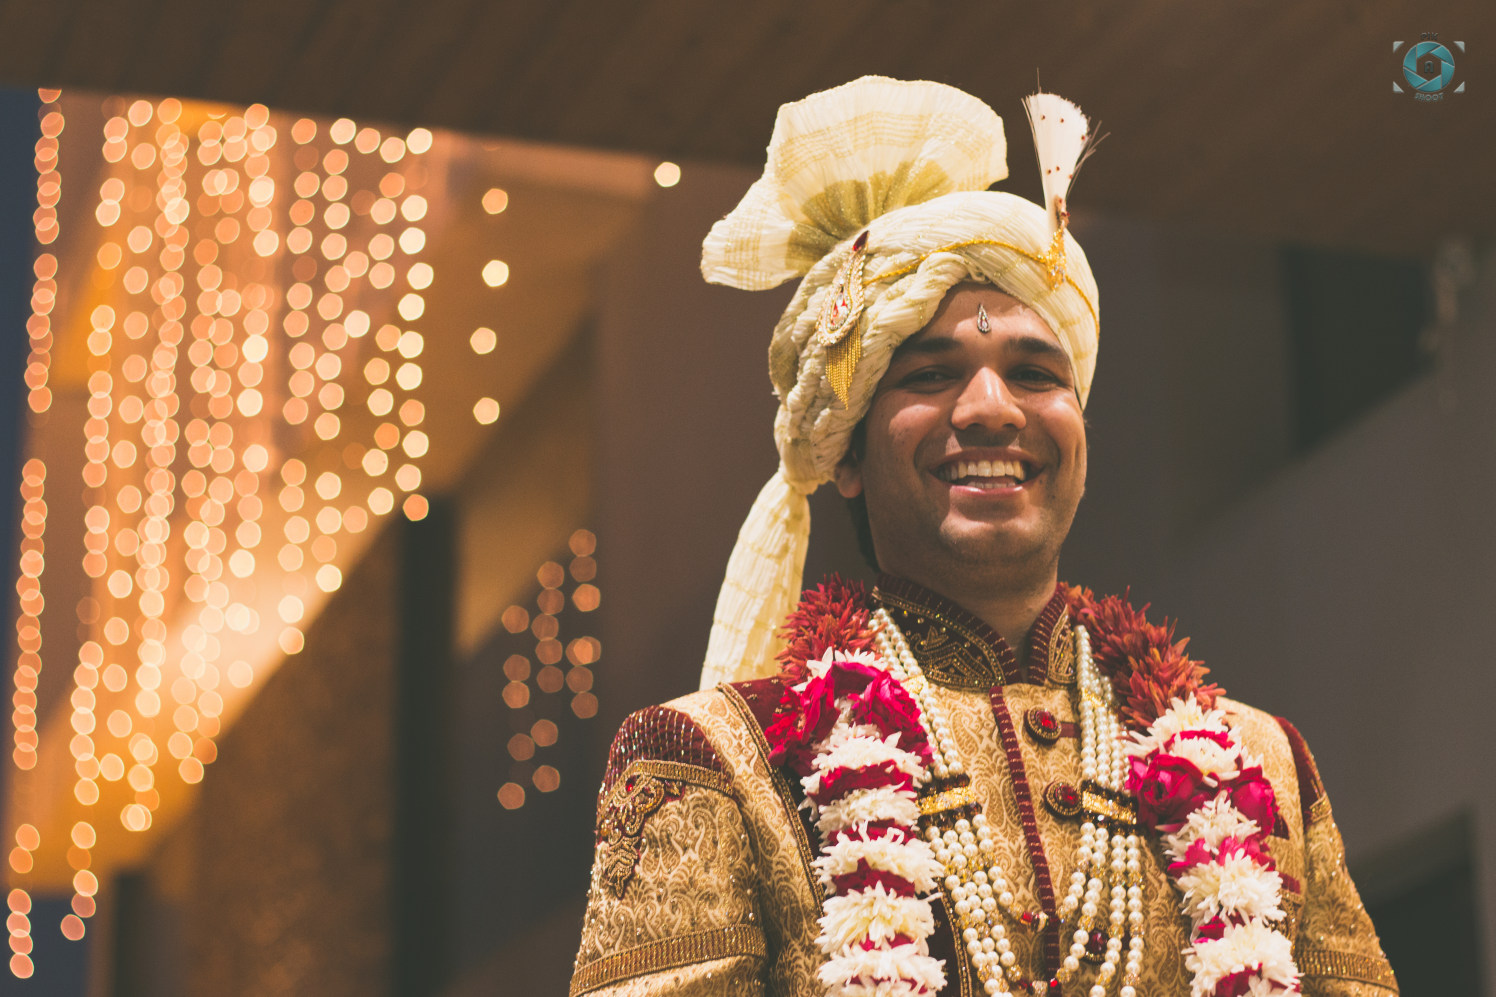 Regal Groom Portrait by Anant Mishra Wedding-photography Groom-wear-and-accessories | Weddings Photos & Ideas